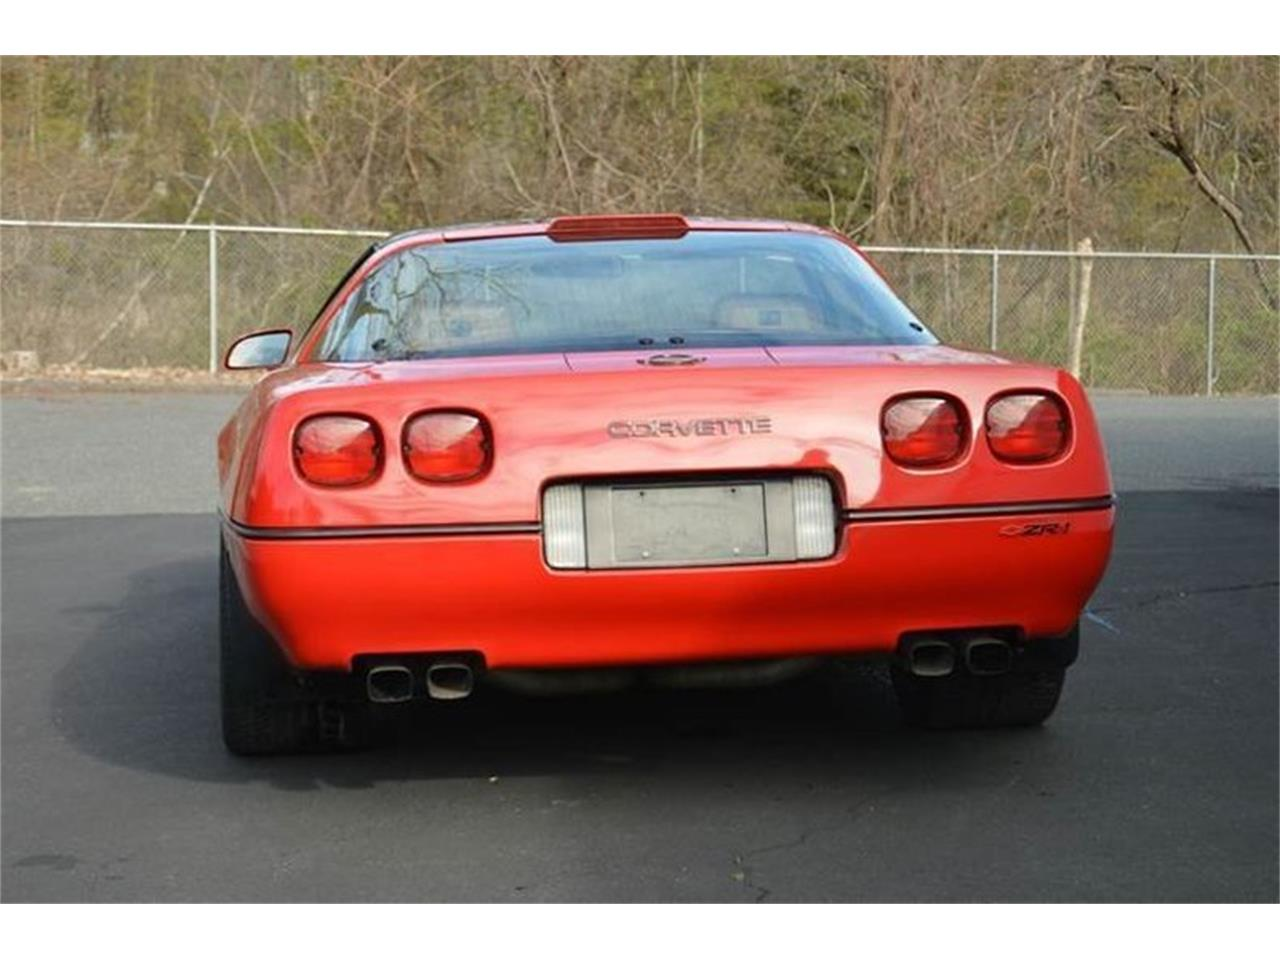 Large Picture of 1990 Chevrolet Corvette ZR1 - $22,900.00 Offered by Mutual Enterprises Inc. - LML5